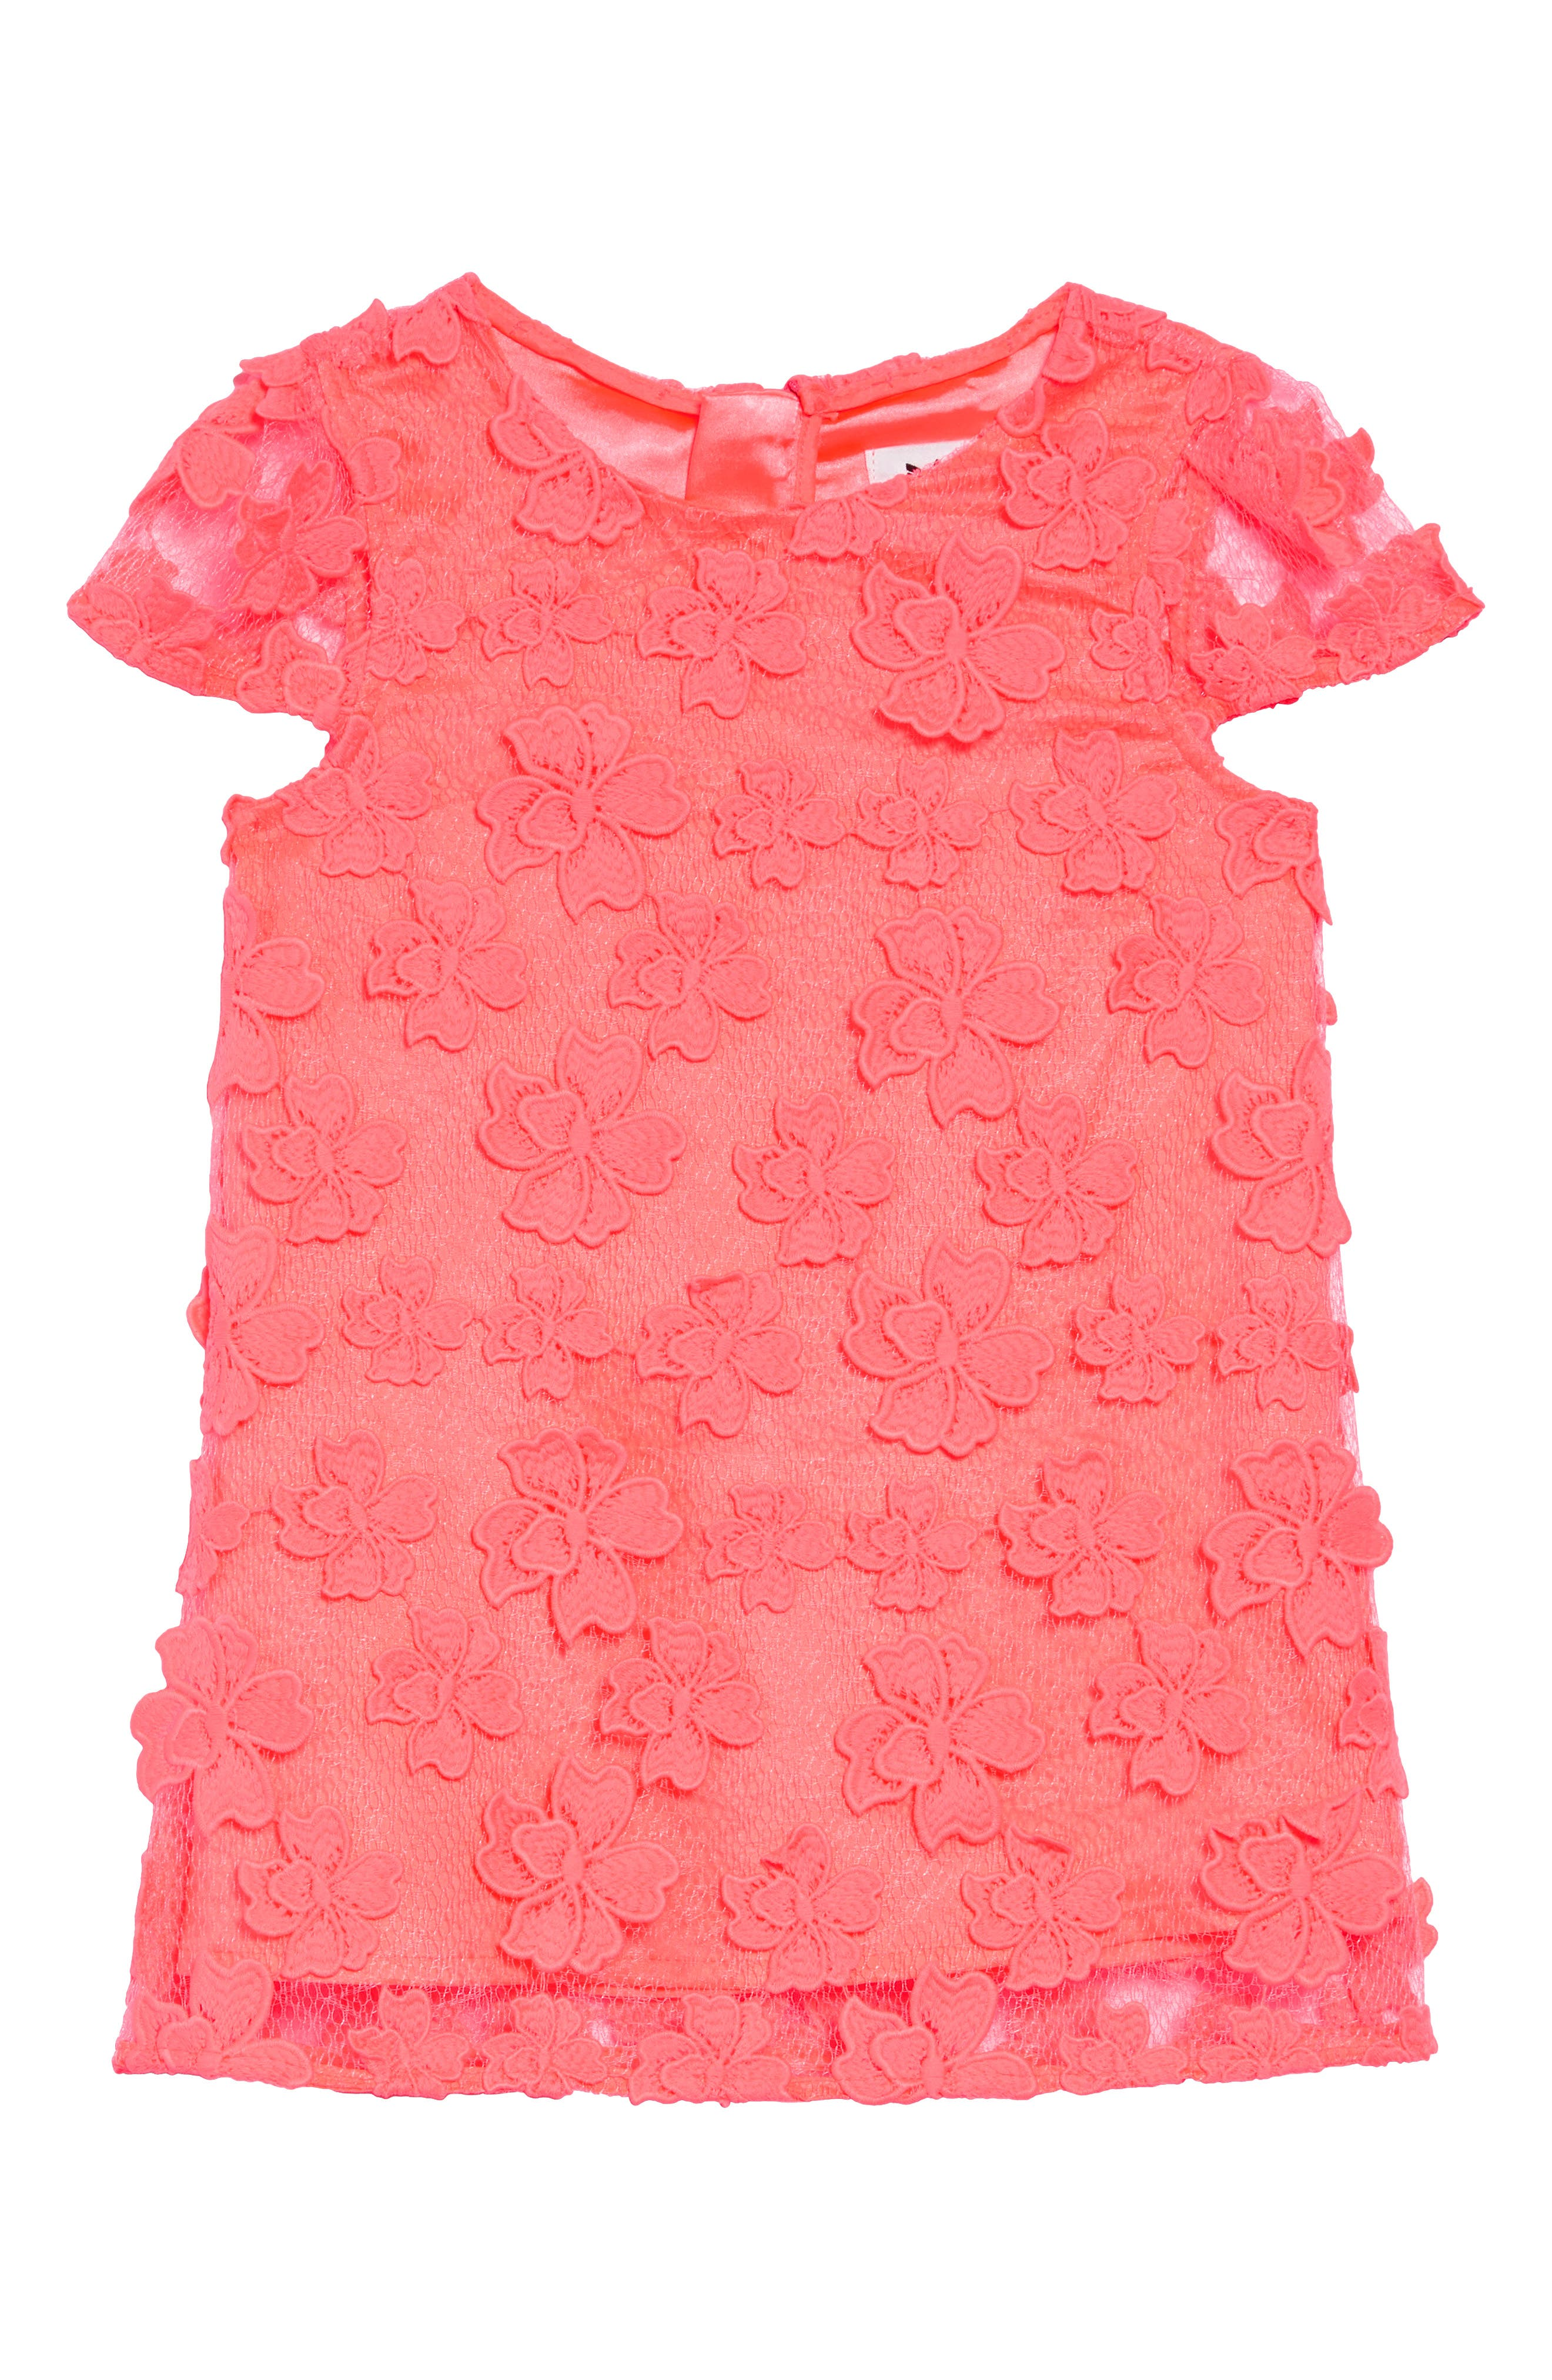 Toddler Girls Milly Minis Chloe Floral Applique Dress Size 23T  Pink